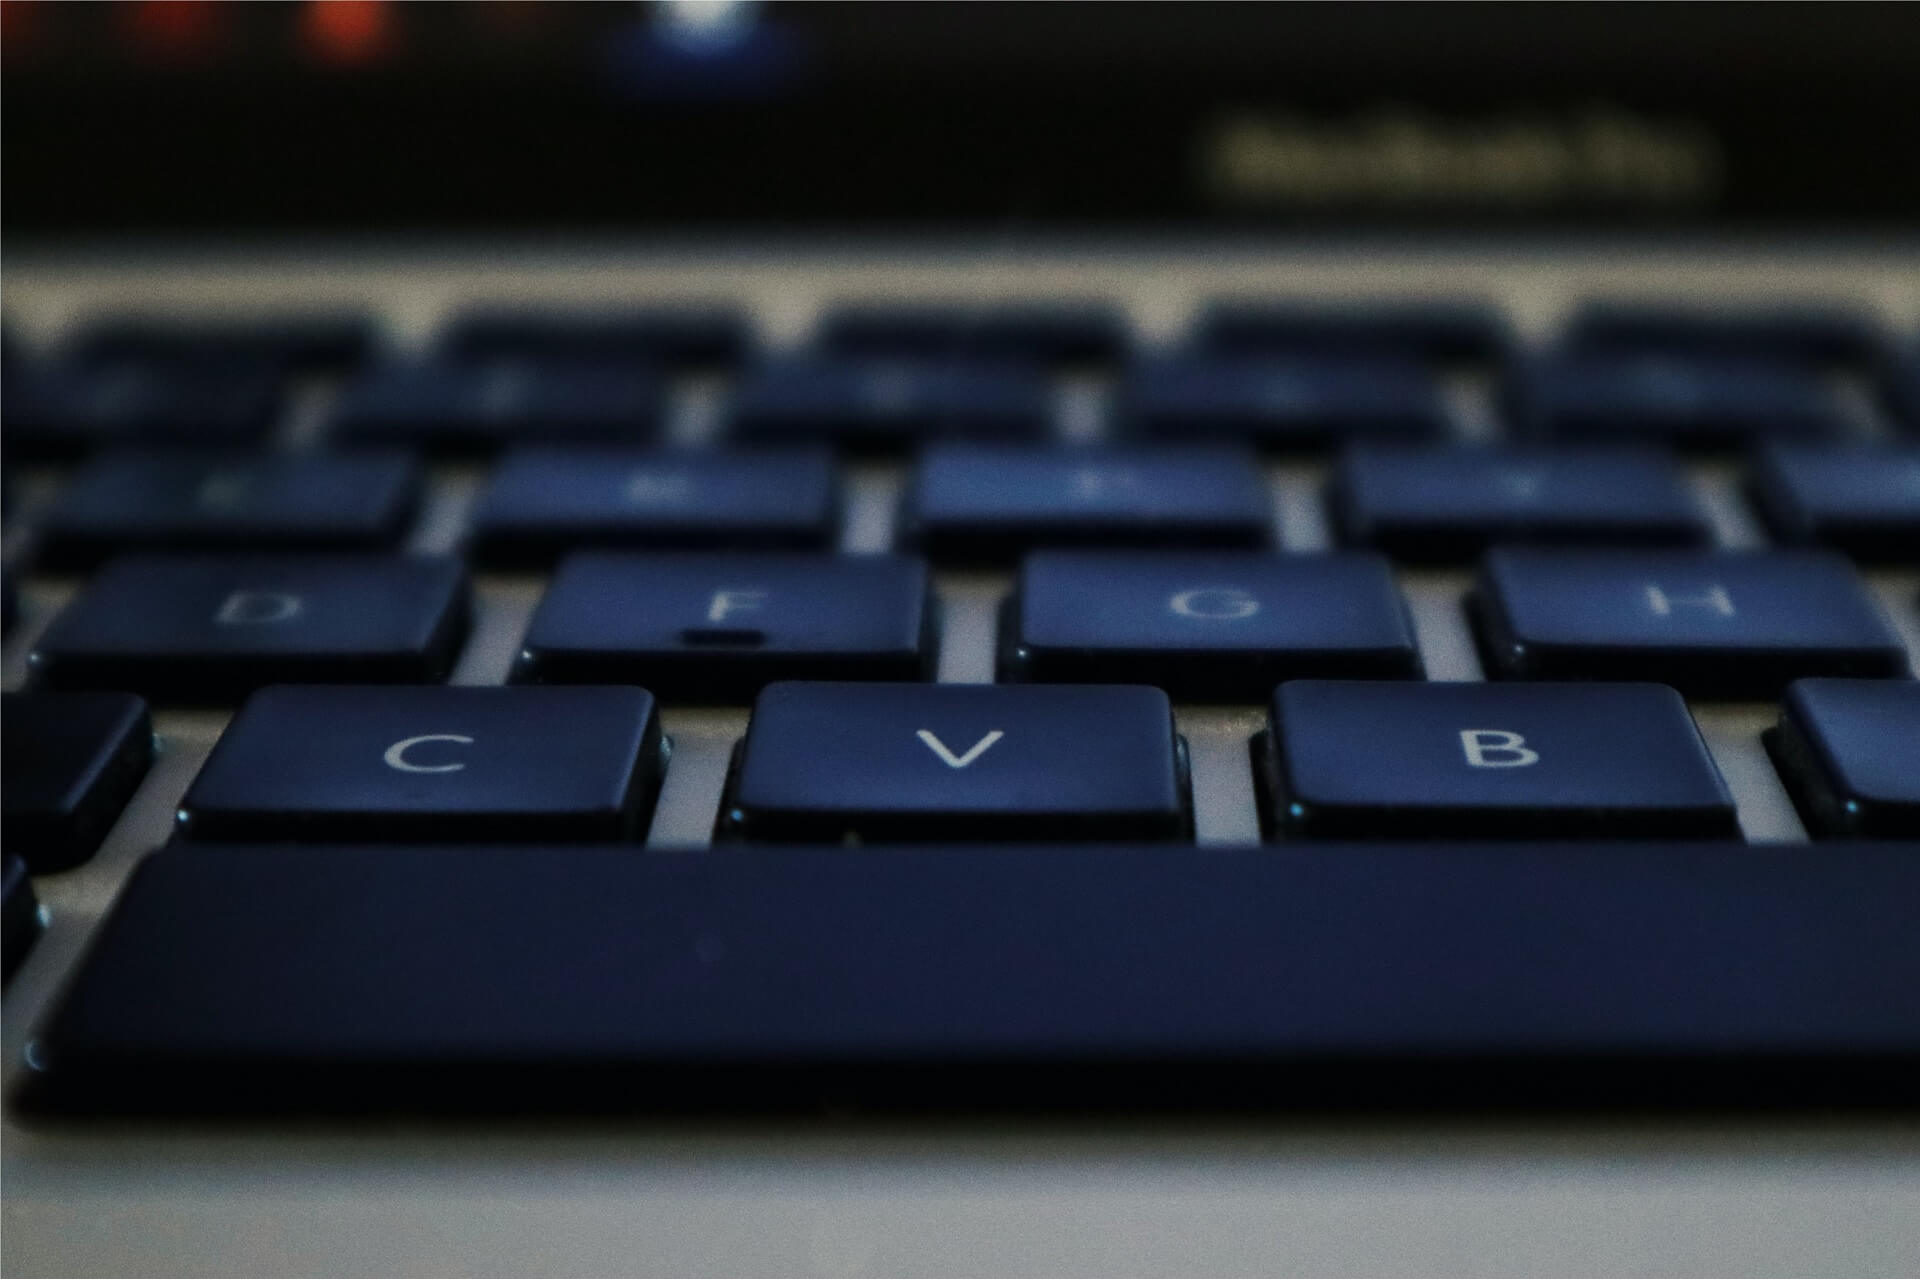 keyboard focused on V